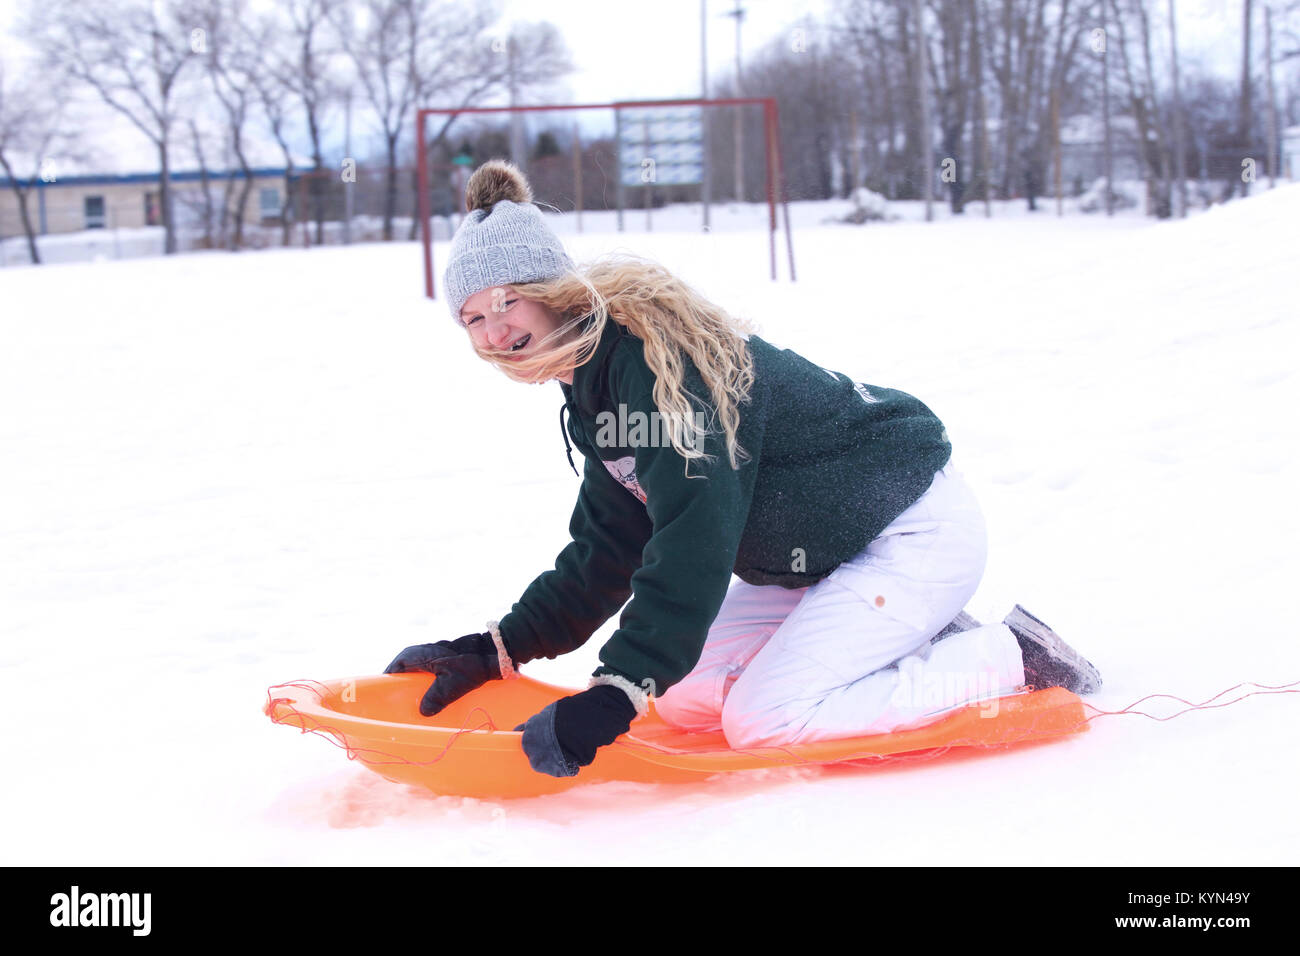 A laughing teenaged girl in ski pants and snow hat over her long hair sliding down a hill on a toboggan in a winter - Stock Image